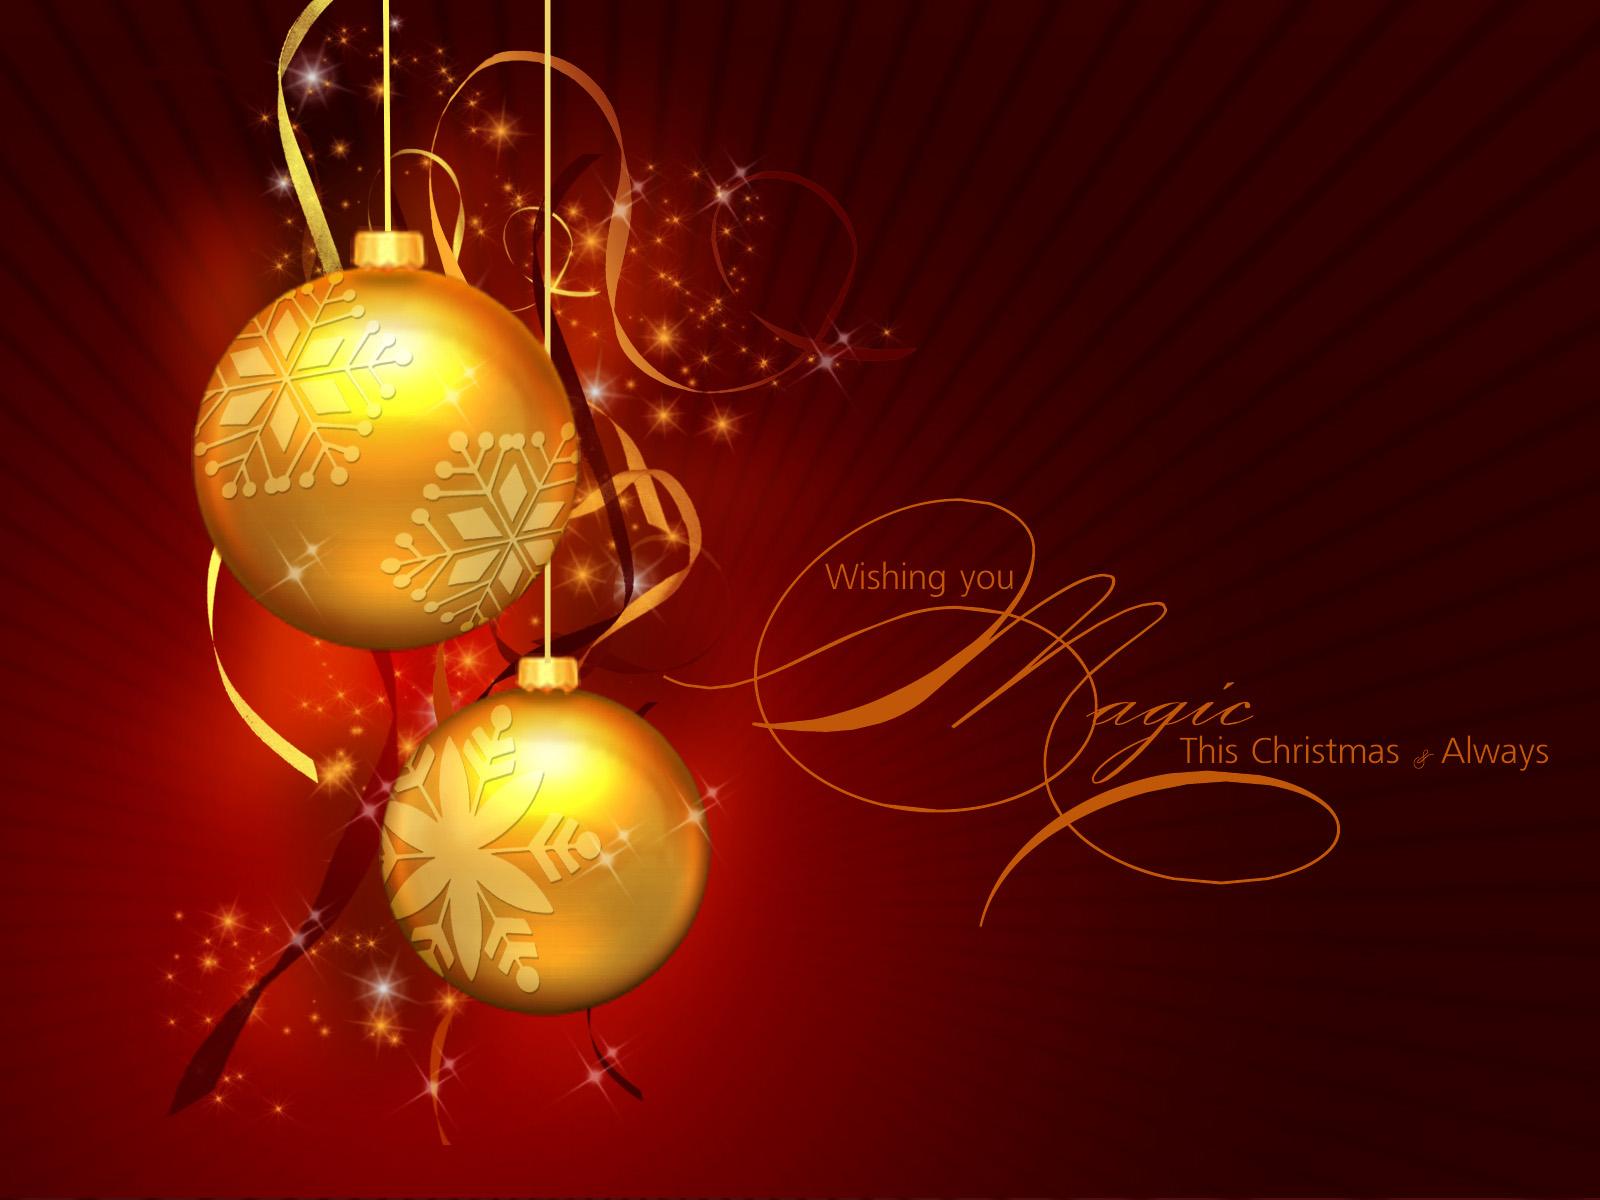 Christmas-Recipes: free christmas wallpaper backgrounds,free ...